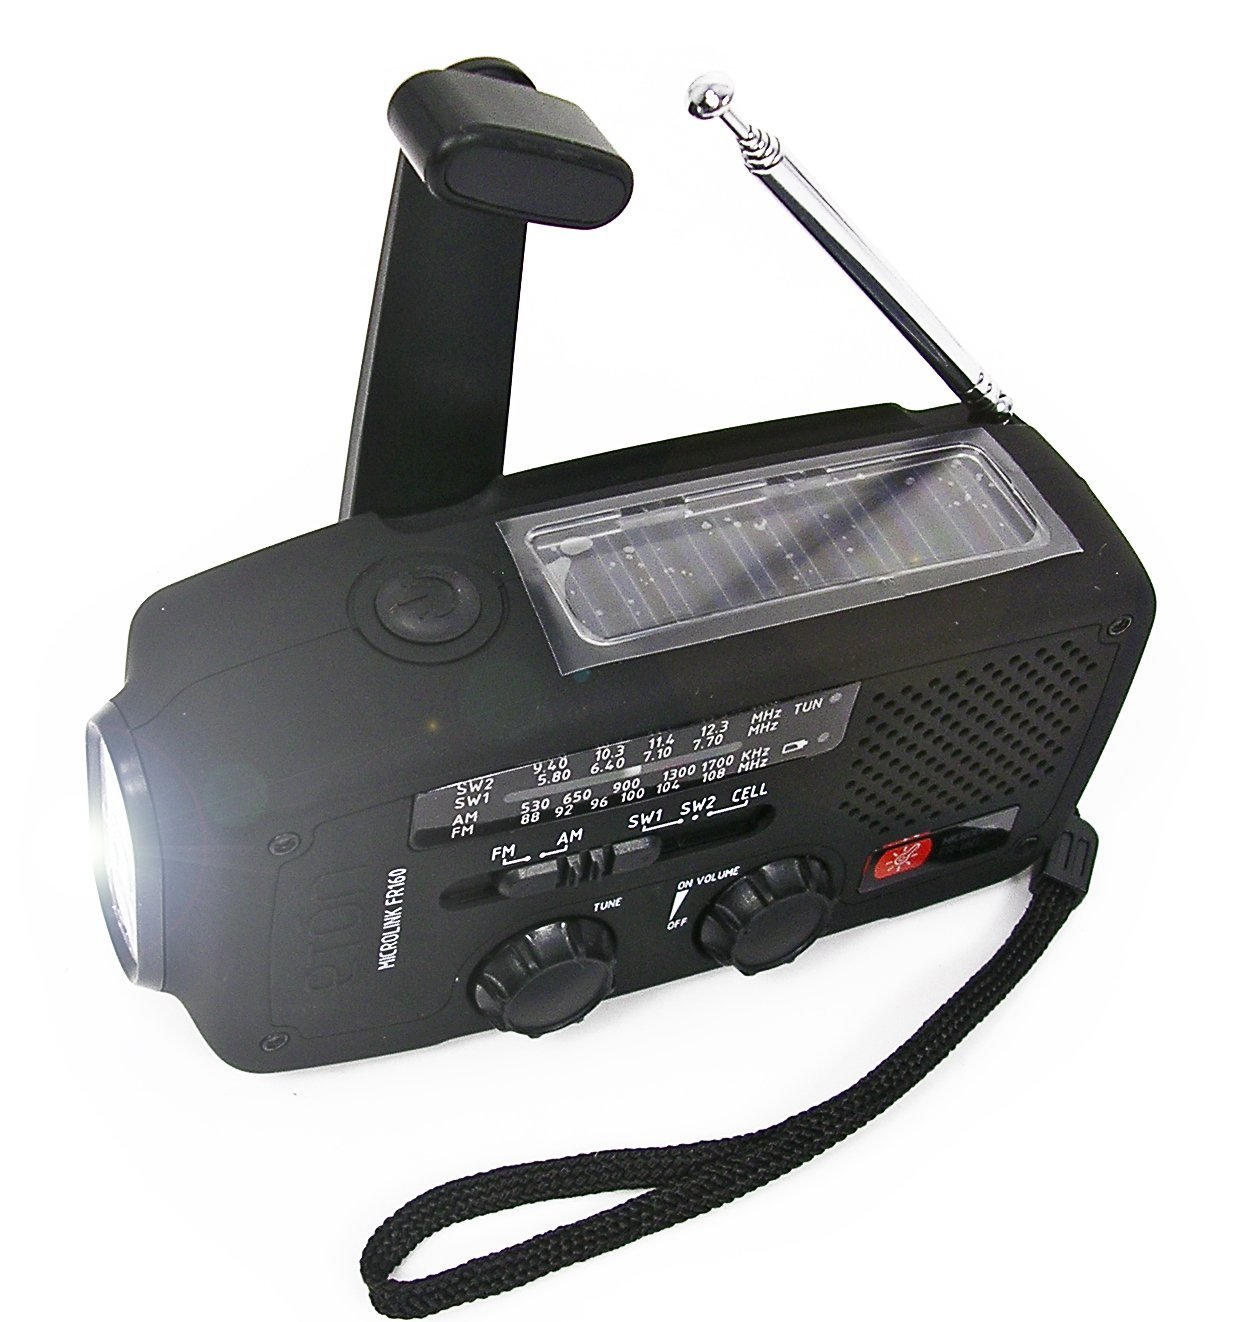 Đài radio Eton Microlink FR-160 AM/FM Flashlight, Solar